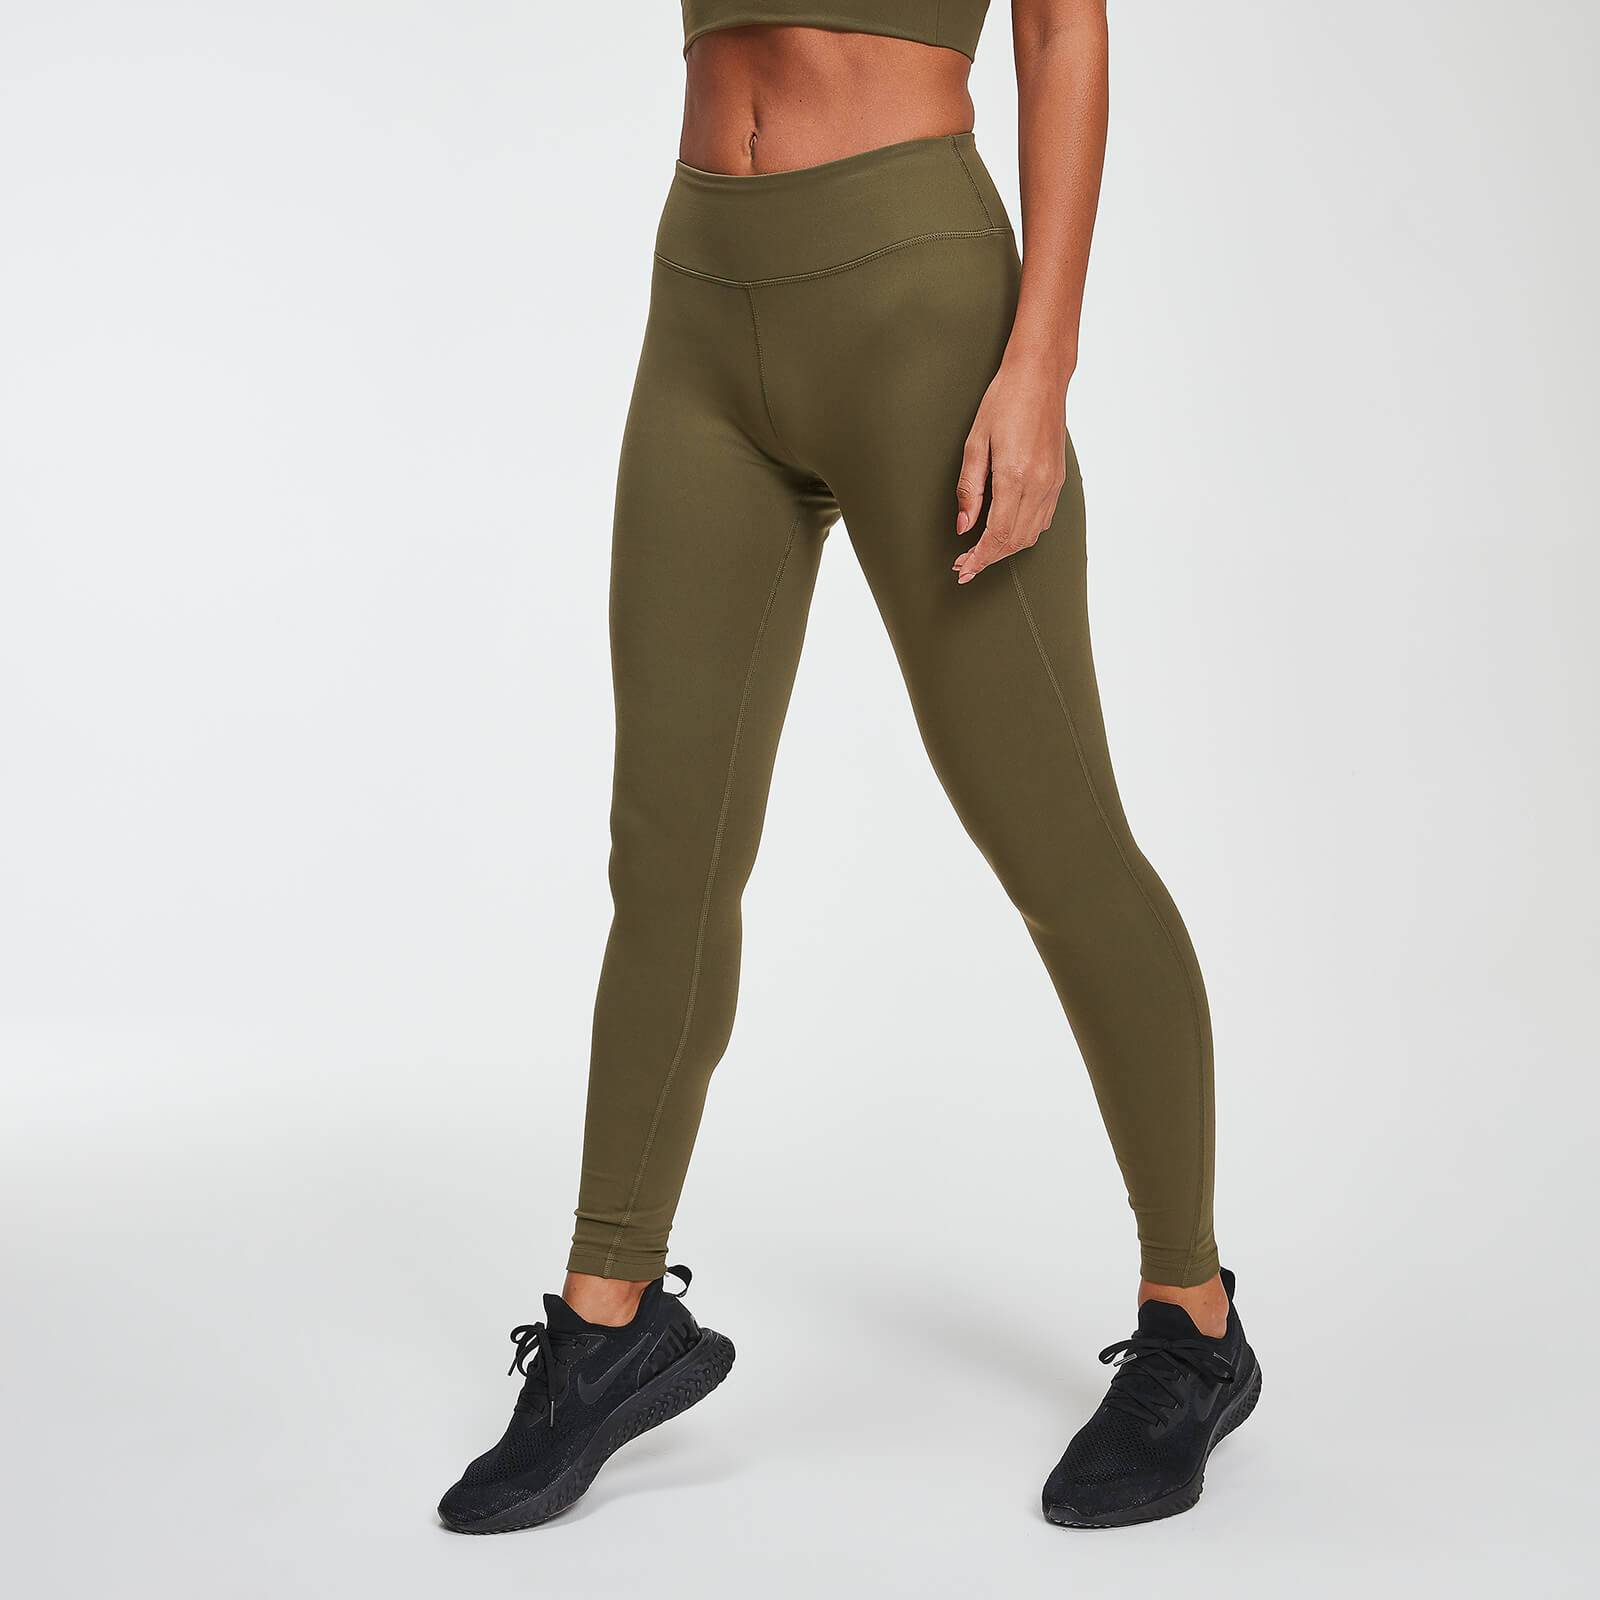 Myprotein Leggings Power - Avocado - XS